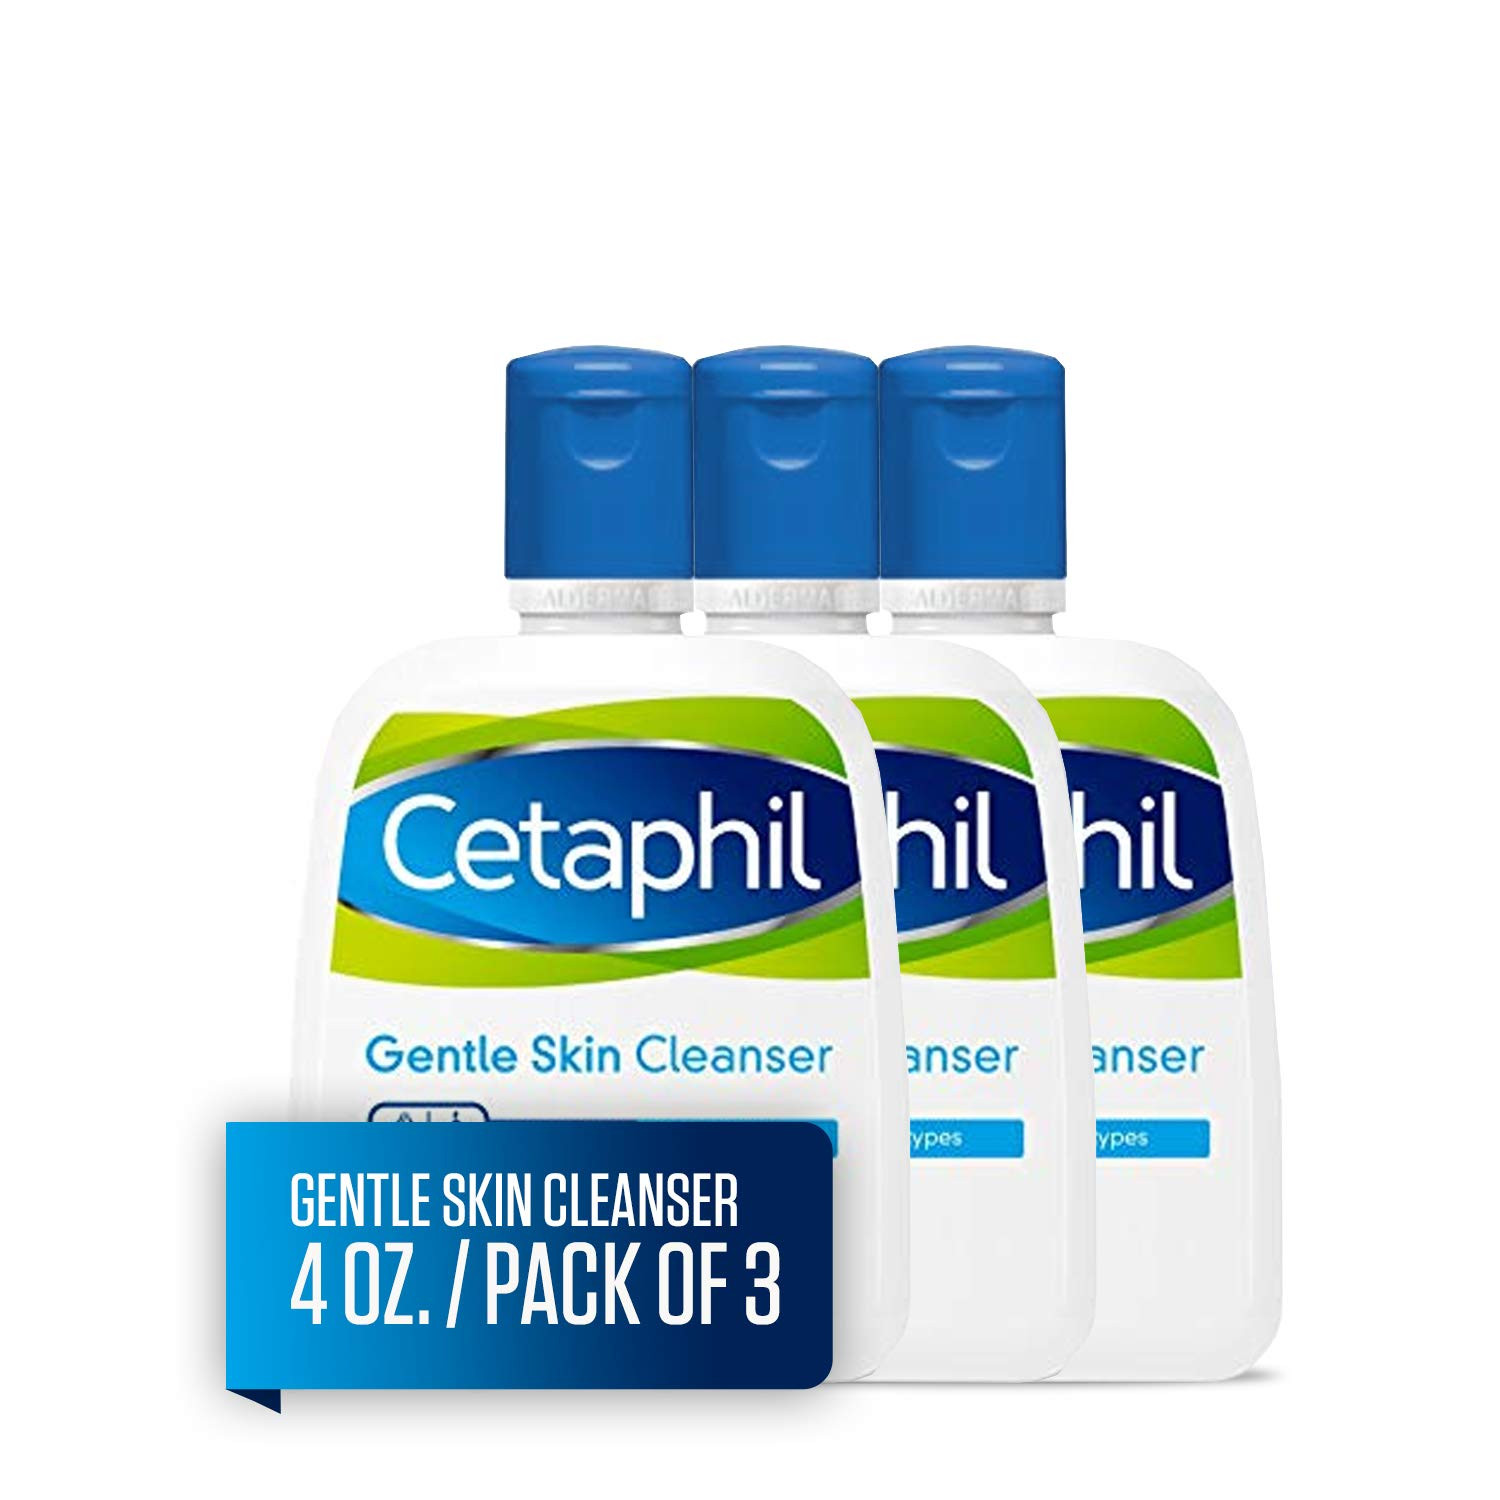 Cetaphil Gentle Skin Cleanser   4 fl oz (Pack of 3)   Hydrating Face Wash & Body Wash   Ideal for Sensitive, Dry Skin   Non-Irritating   Won't Clog Pores   Fragrance-Free   Dermatologist Recommended